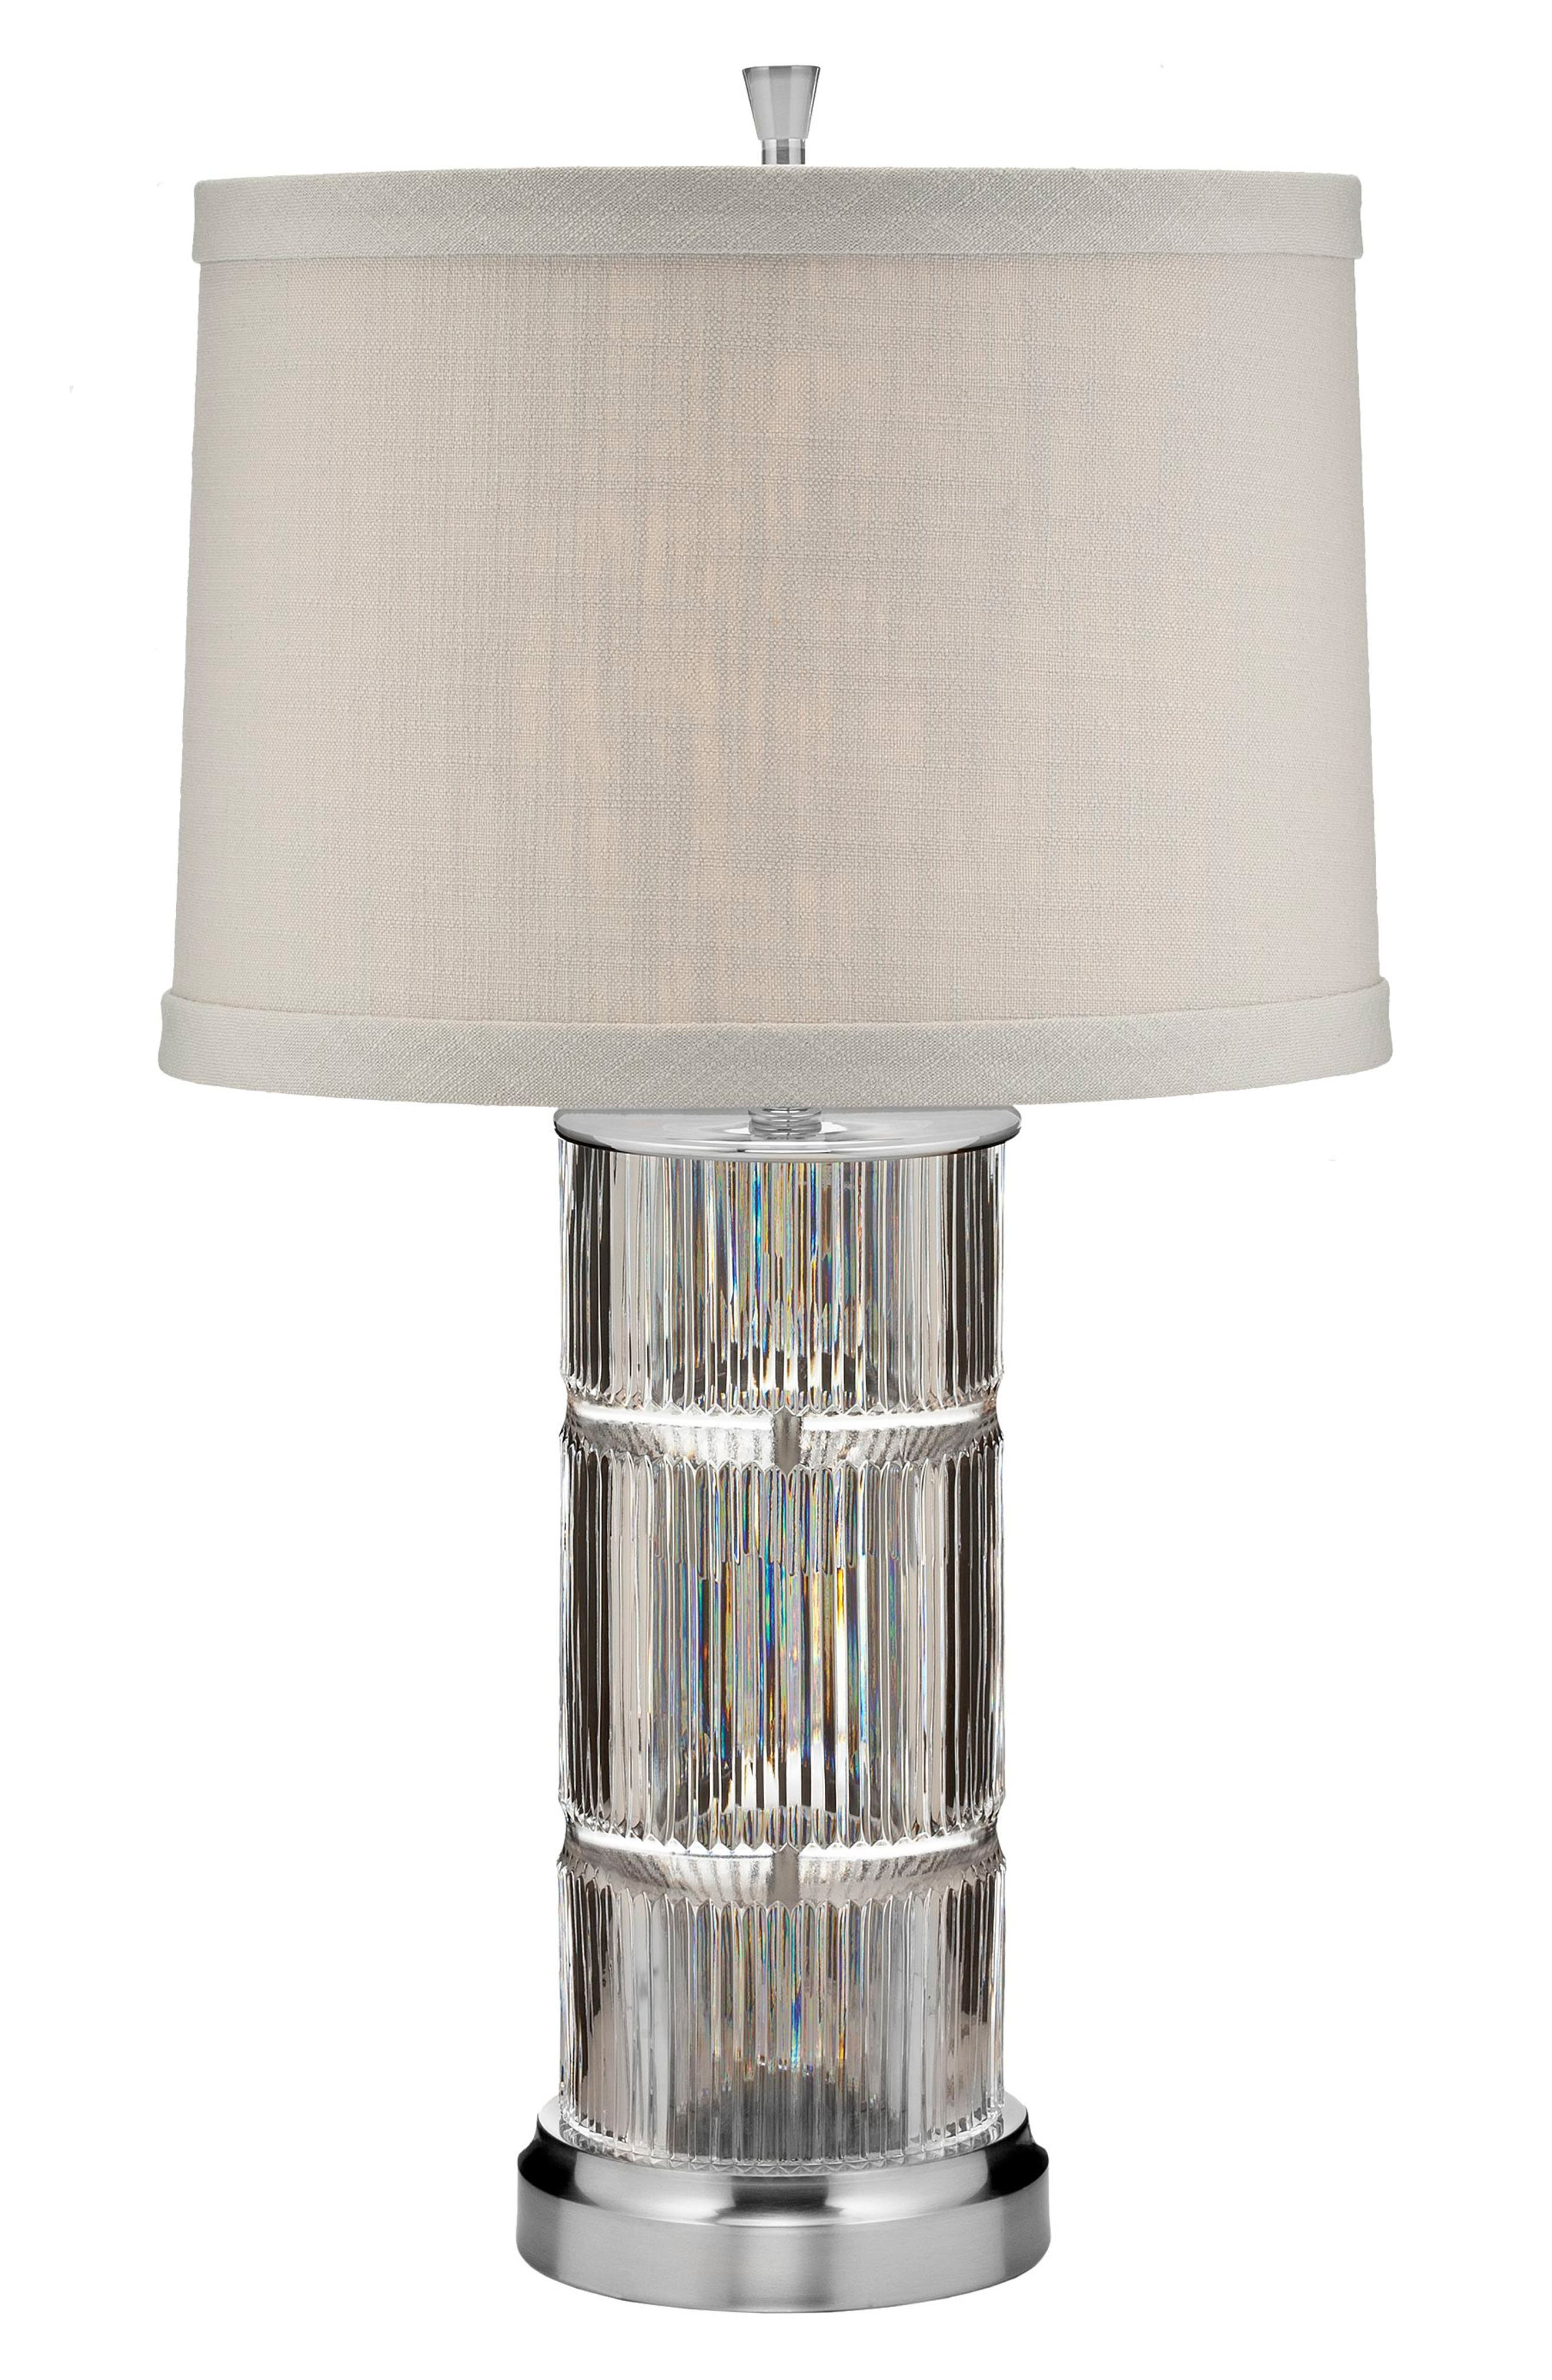 Linear Crystal Table Lamp,                             Main thumbnail 1, color,